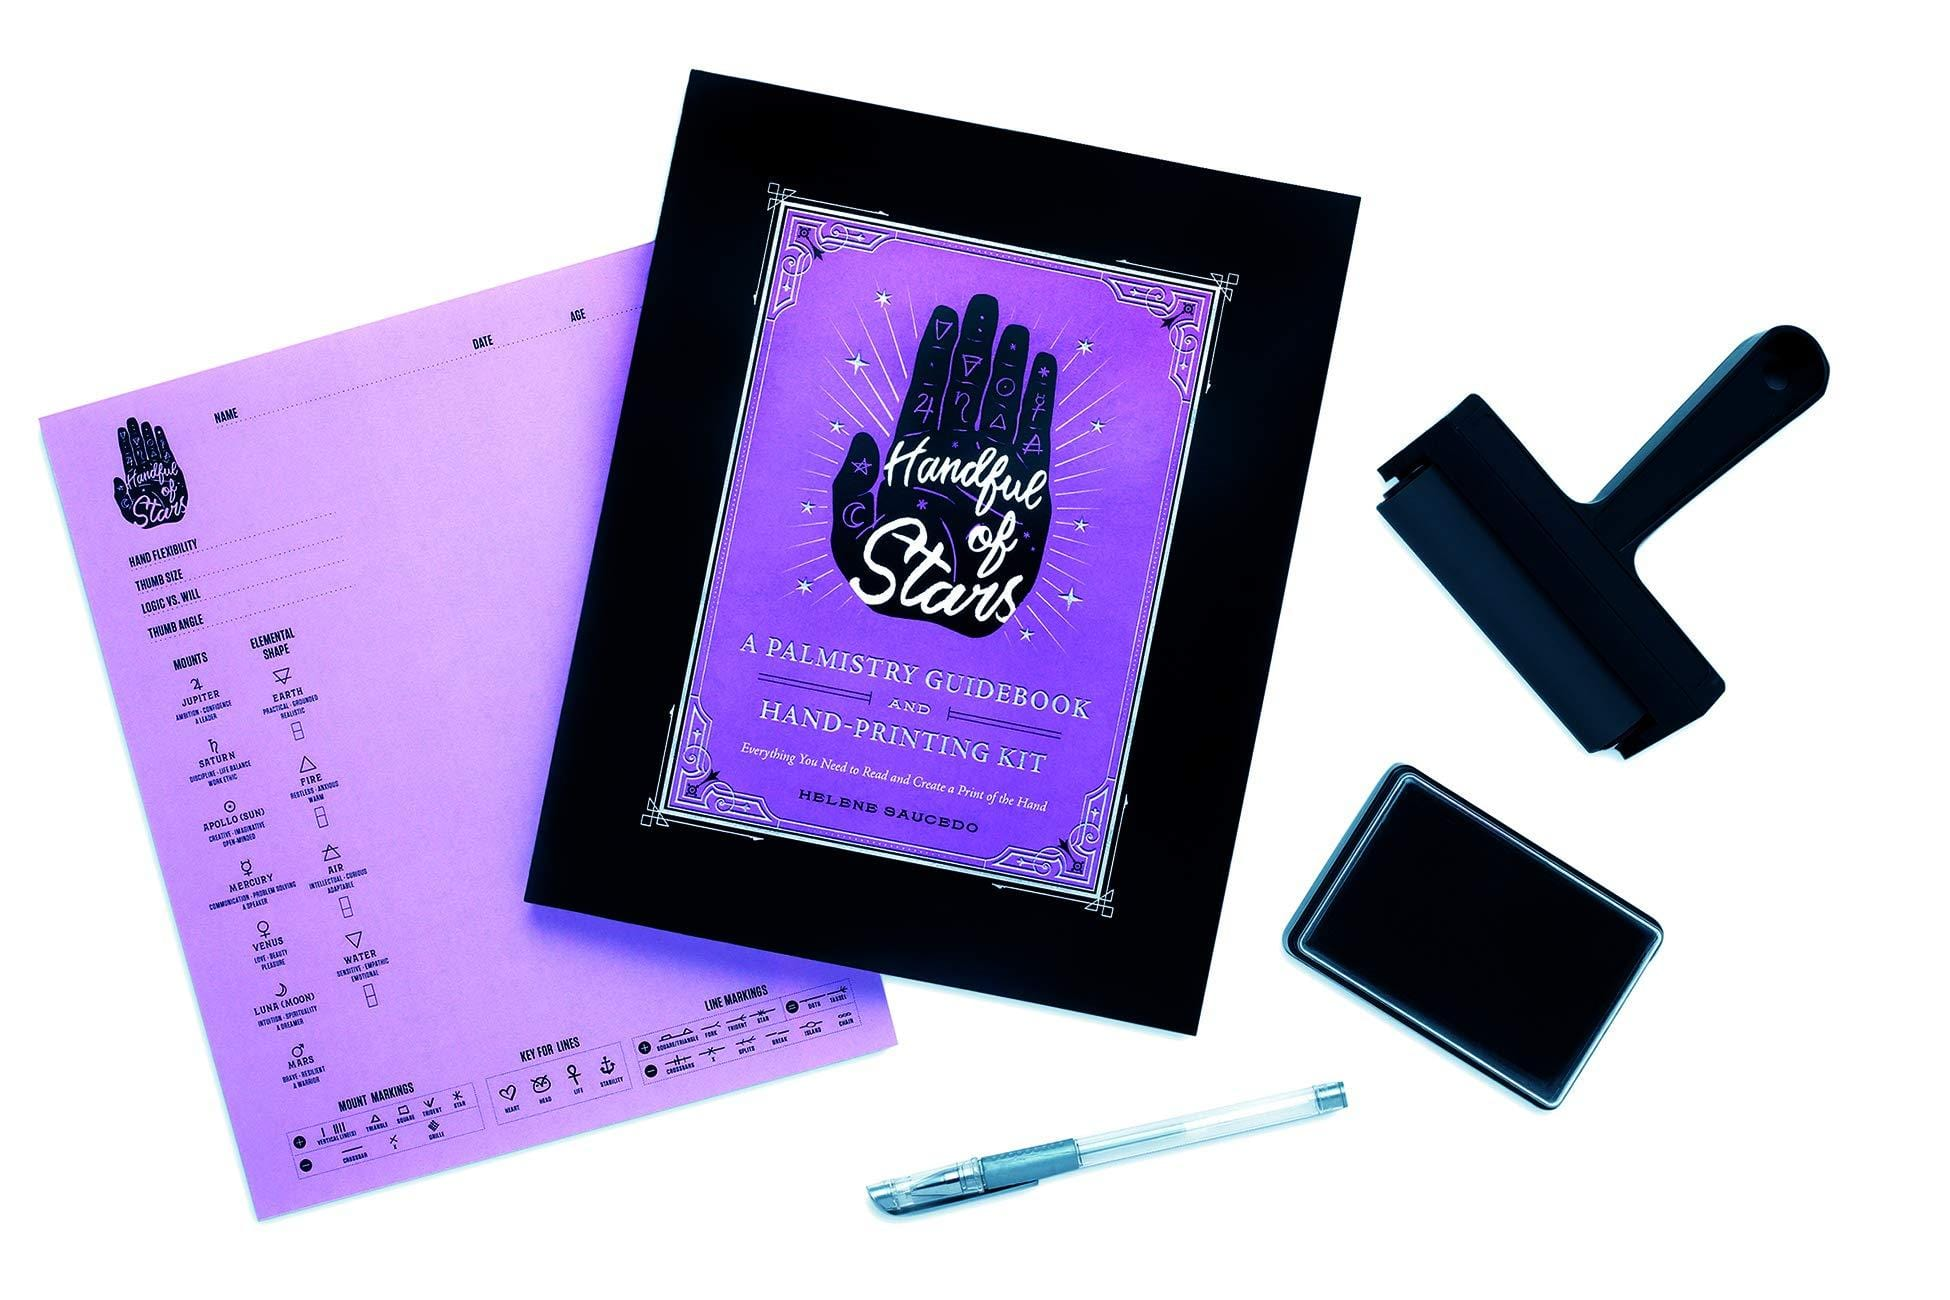 Handful of Stars: A Palmistry Guidebook and Hand-Printing Kit